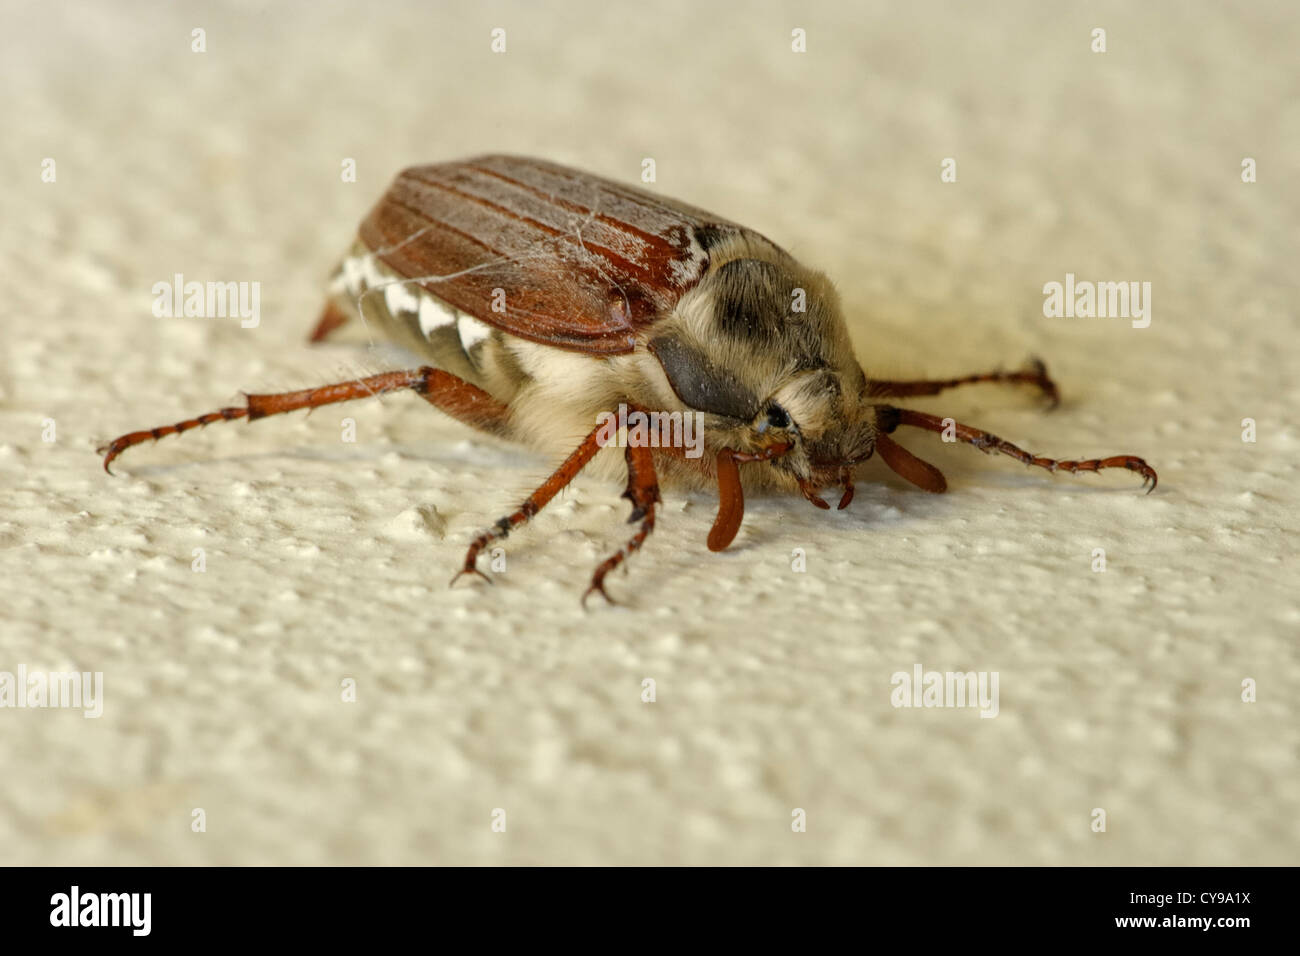 Cockchafer or May Bug, Melolontha melolontha Stock Photo